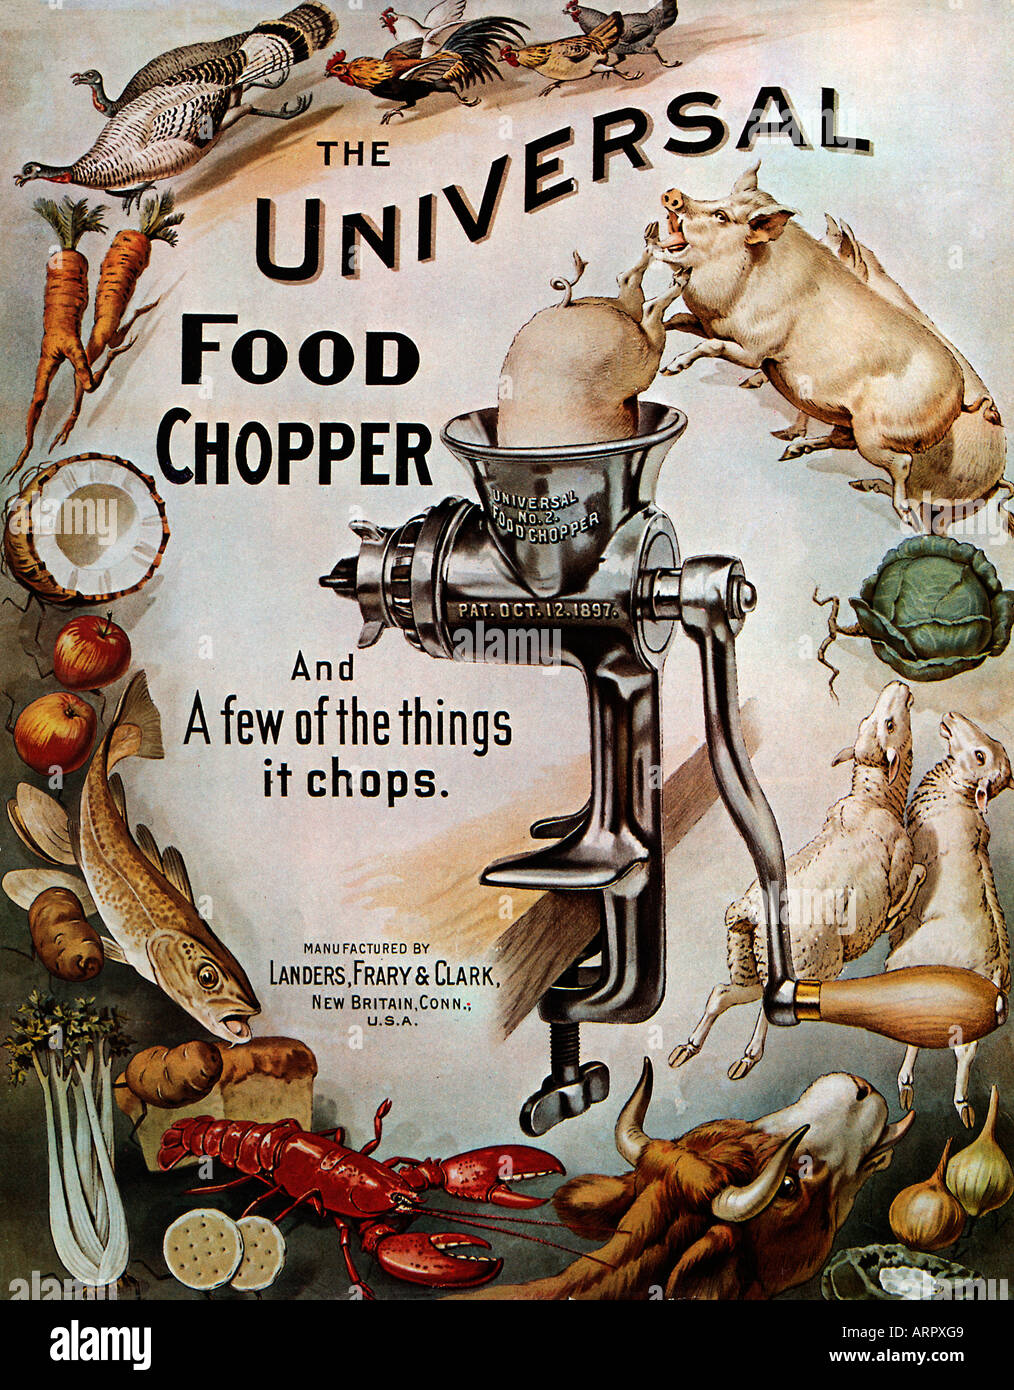 Universal Food Chopper Late 19th Century Advert For The